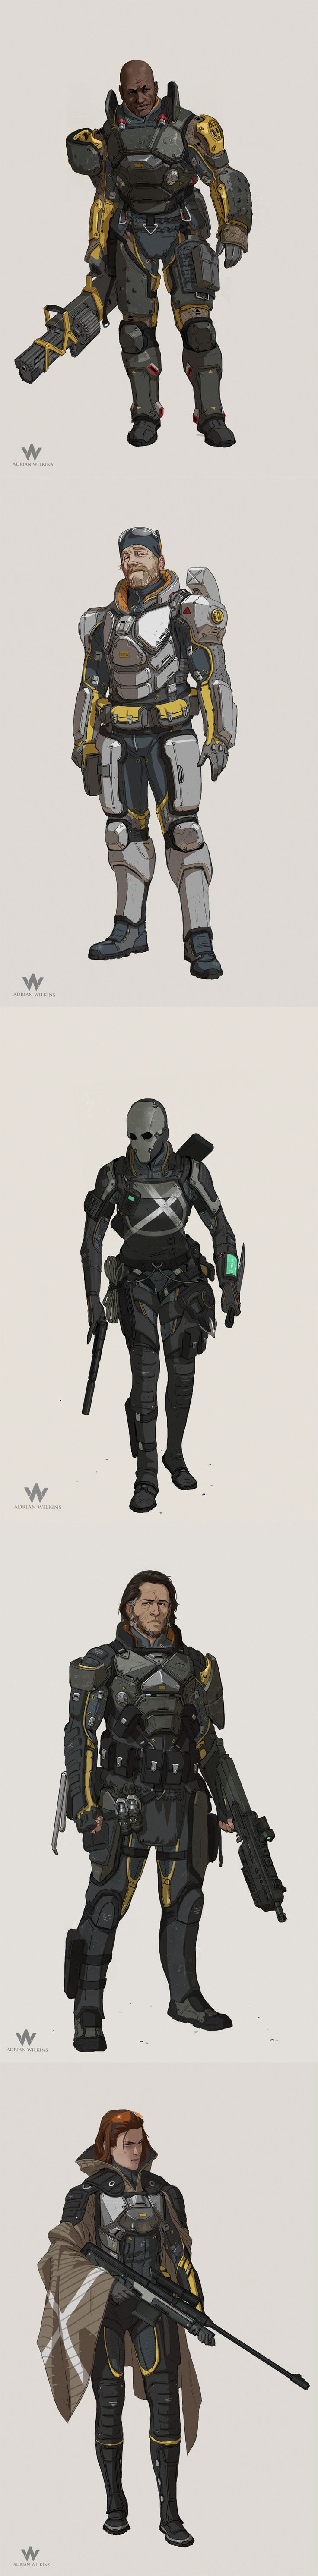 Sci-Fi Characters by Adrian Wilkins